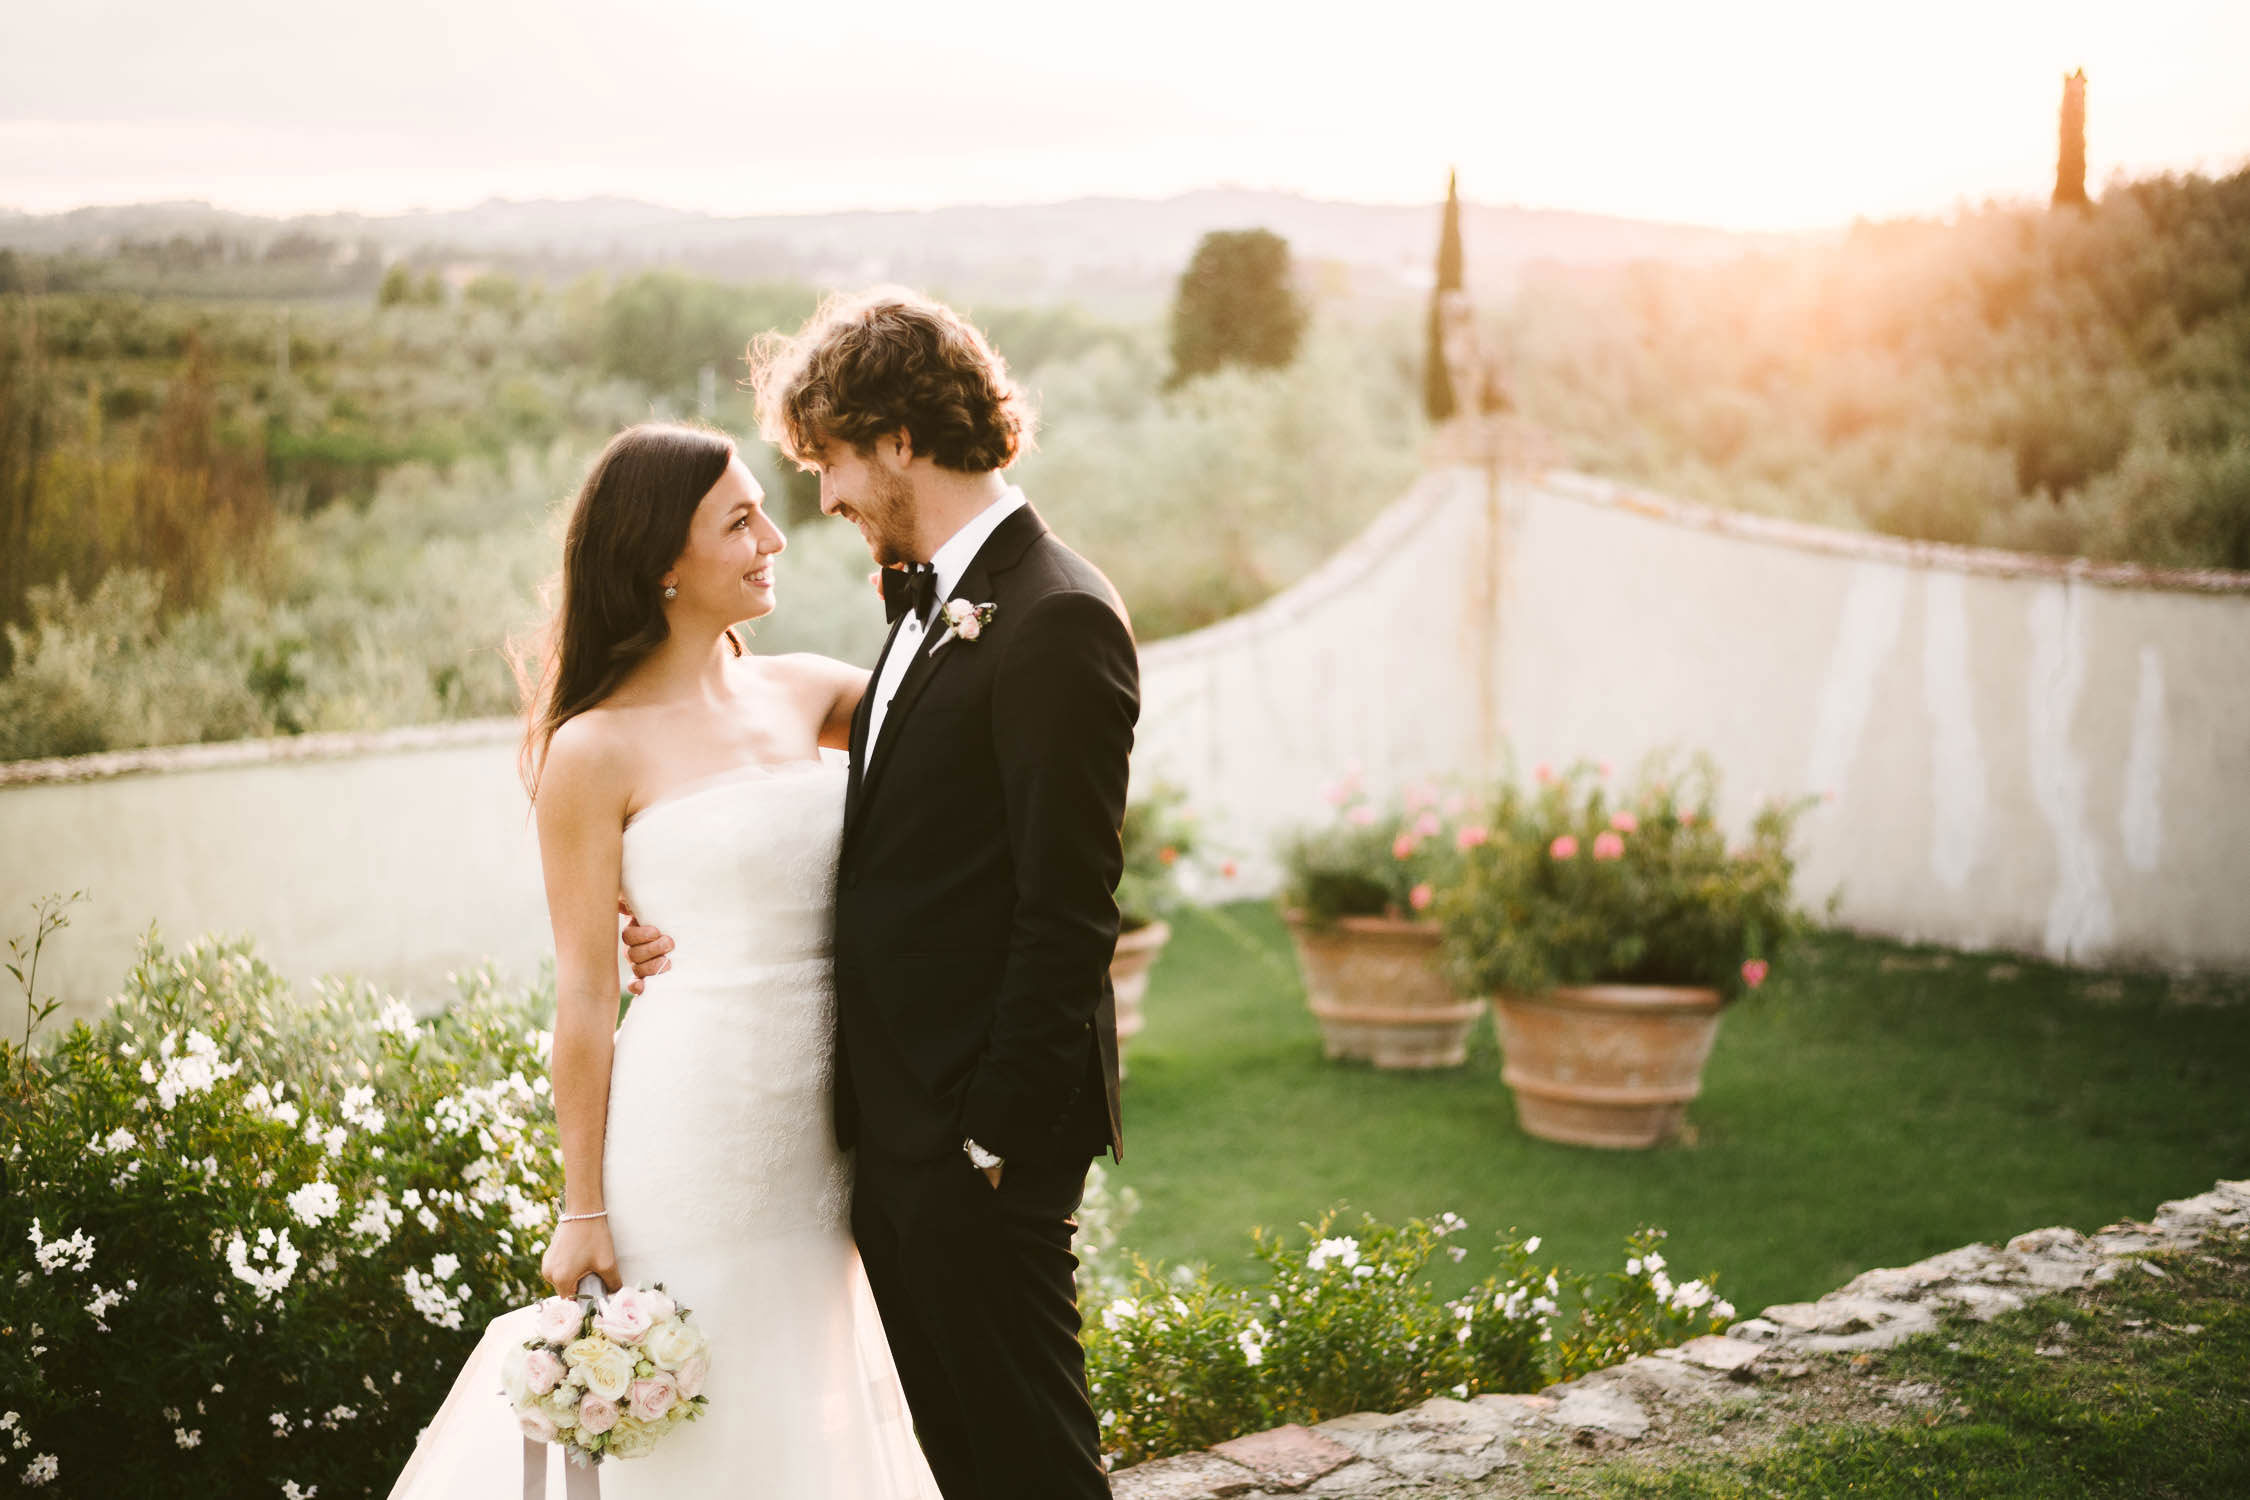 Tuscan Wedding gorgeous elegant bride in Vera Wang gown and groom wedding portrait at Villa Medicea di Lilliano Wine Estate in Florence countryside